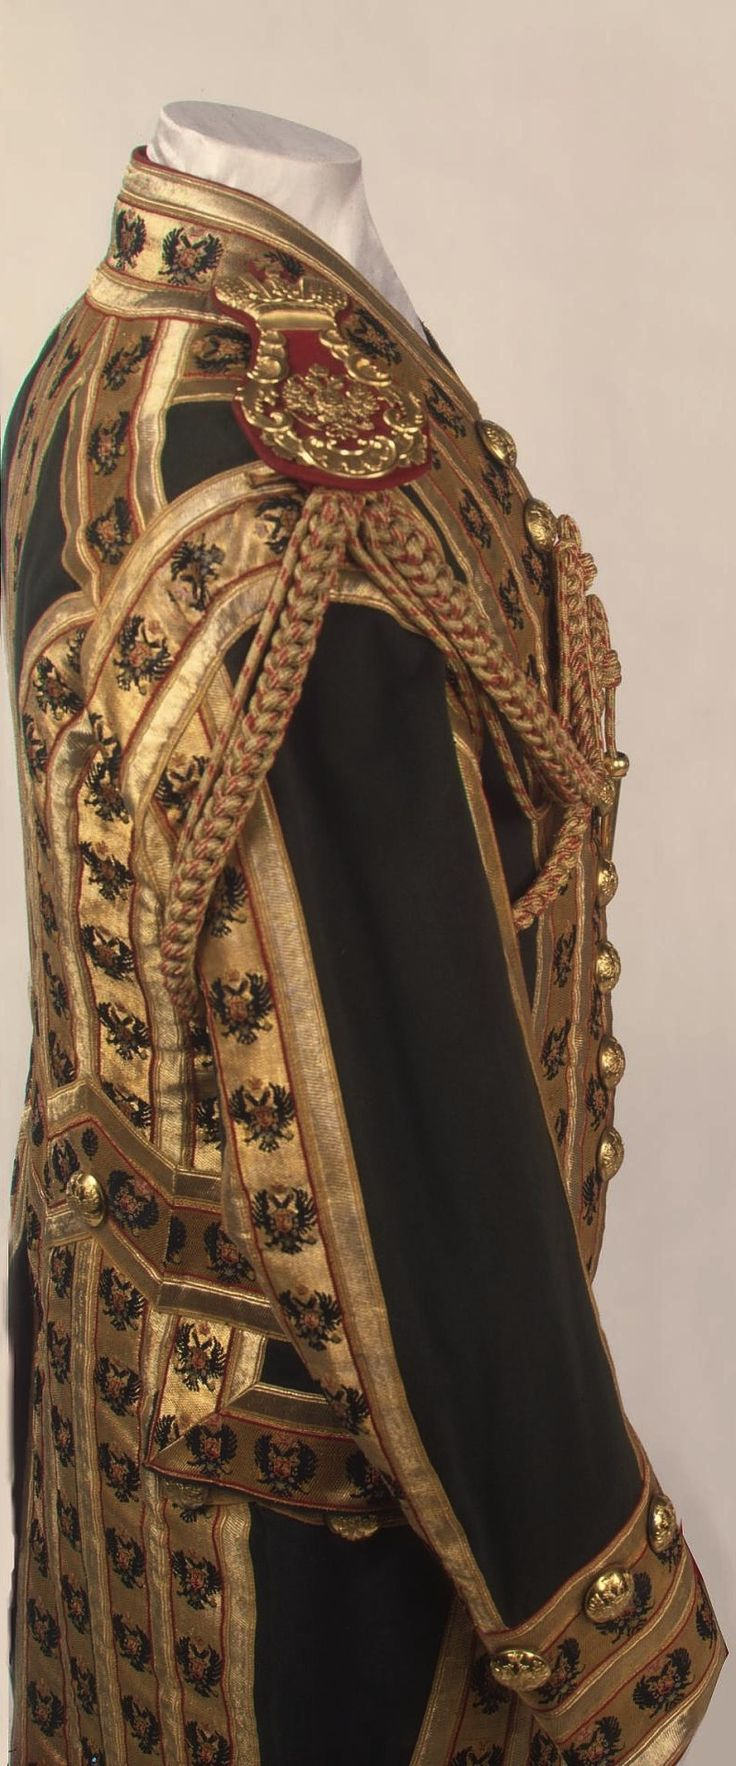 Ceremonial costume of a category I court lackey, St. Petersburg, Russia, late 19th to early 20th centuries. State Hermitage Museum.